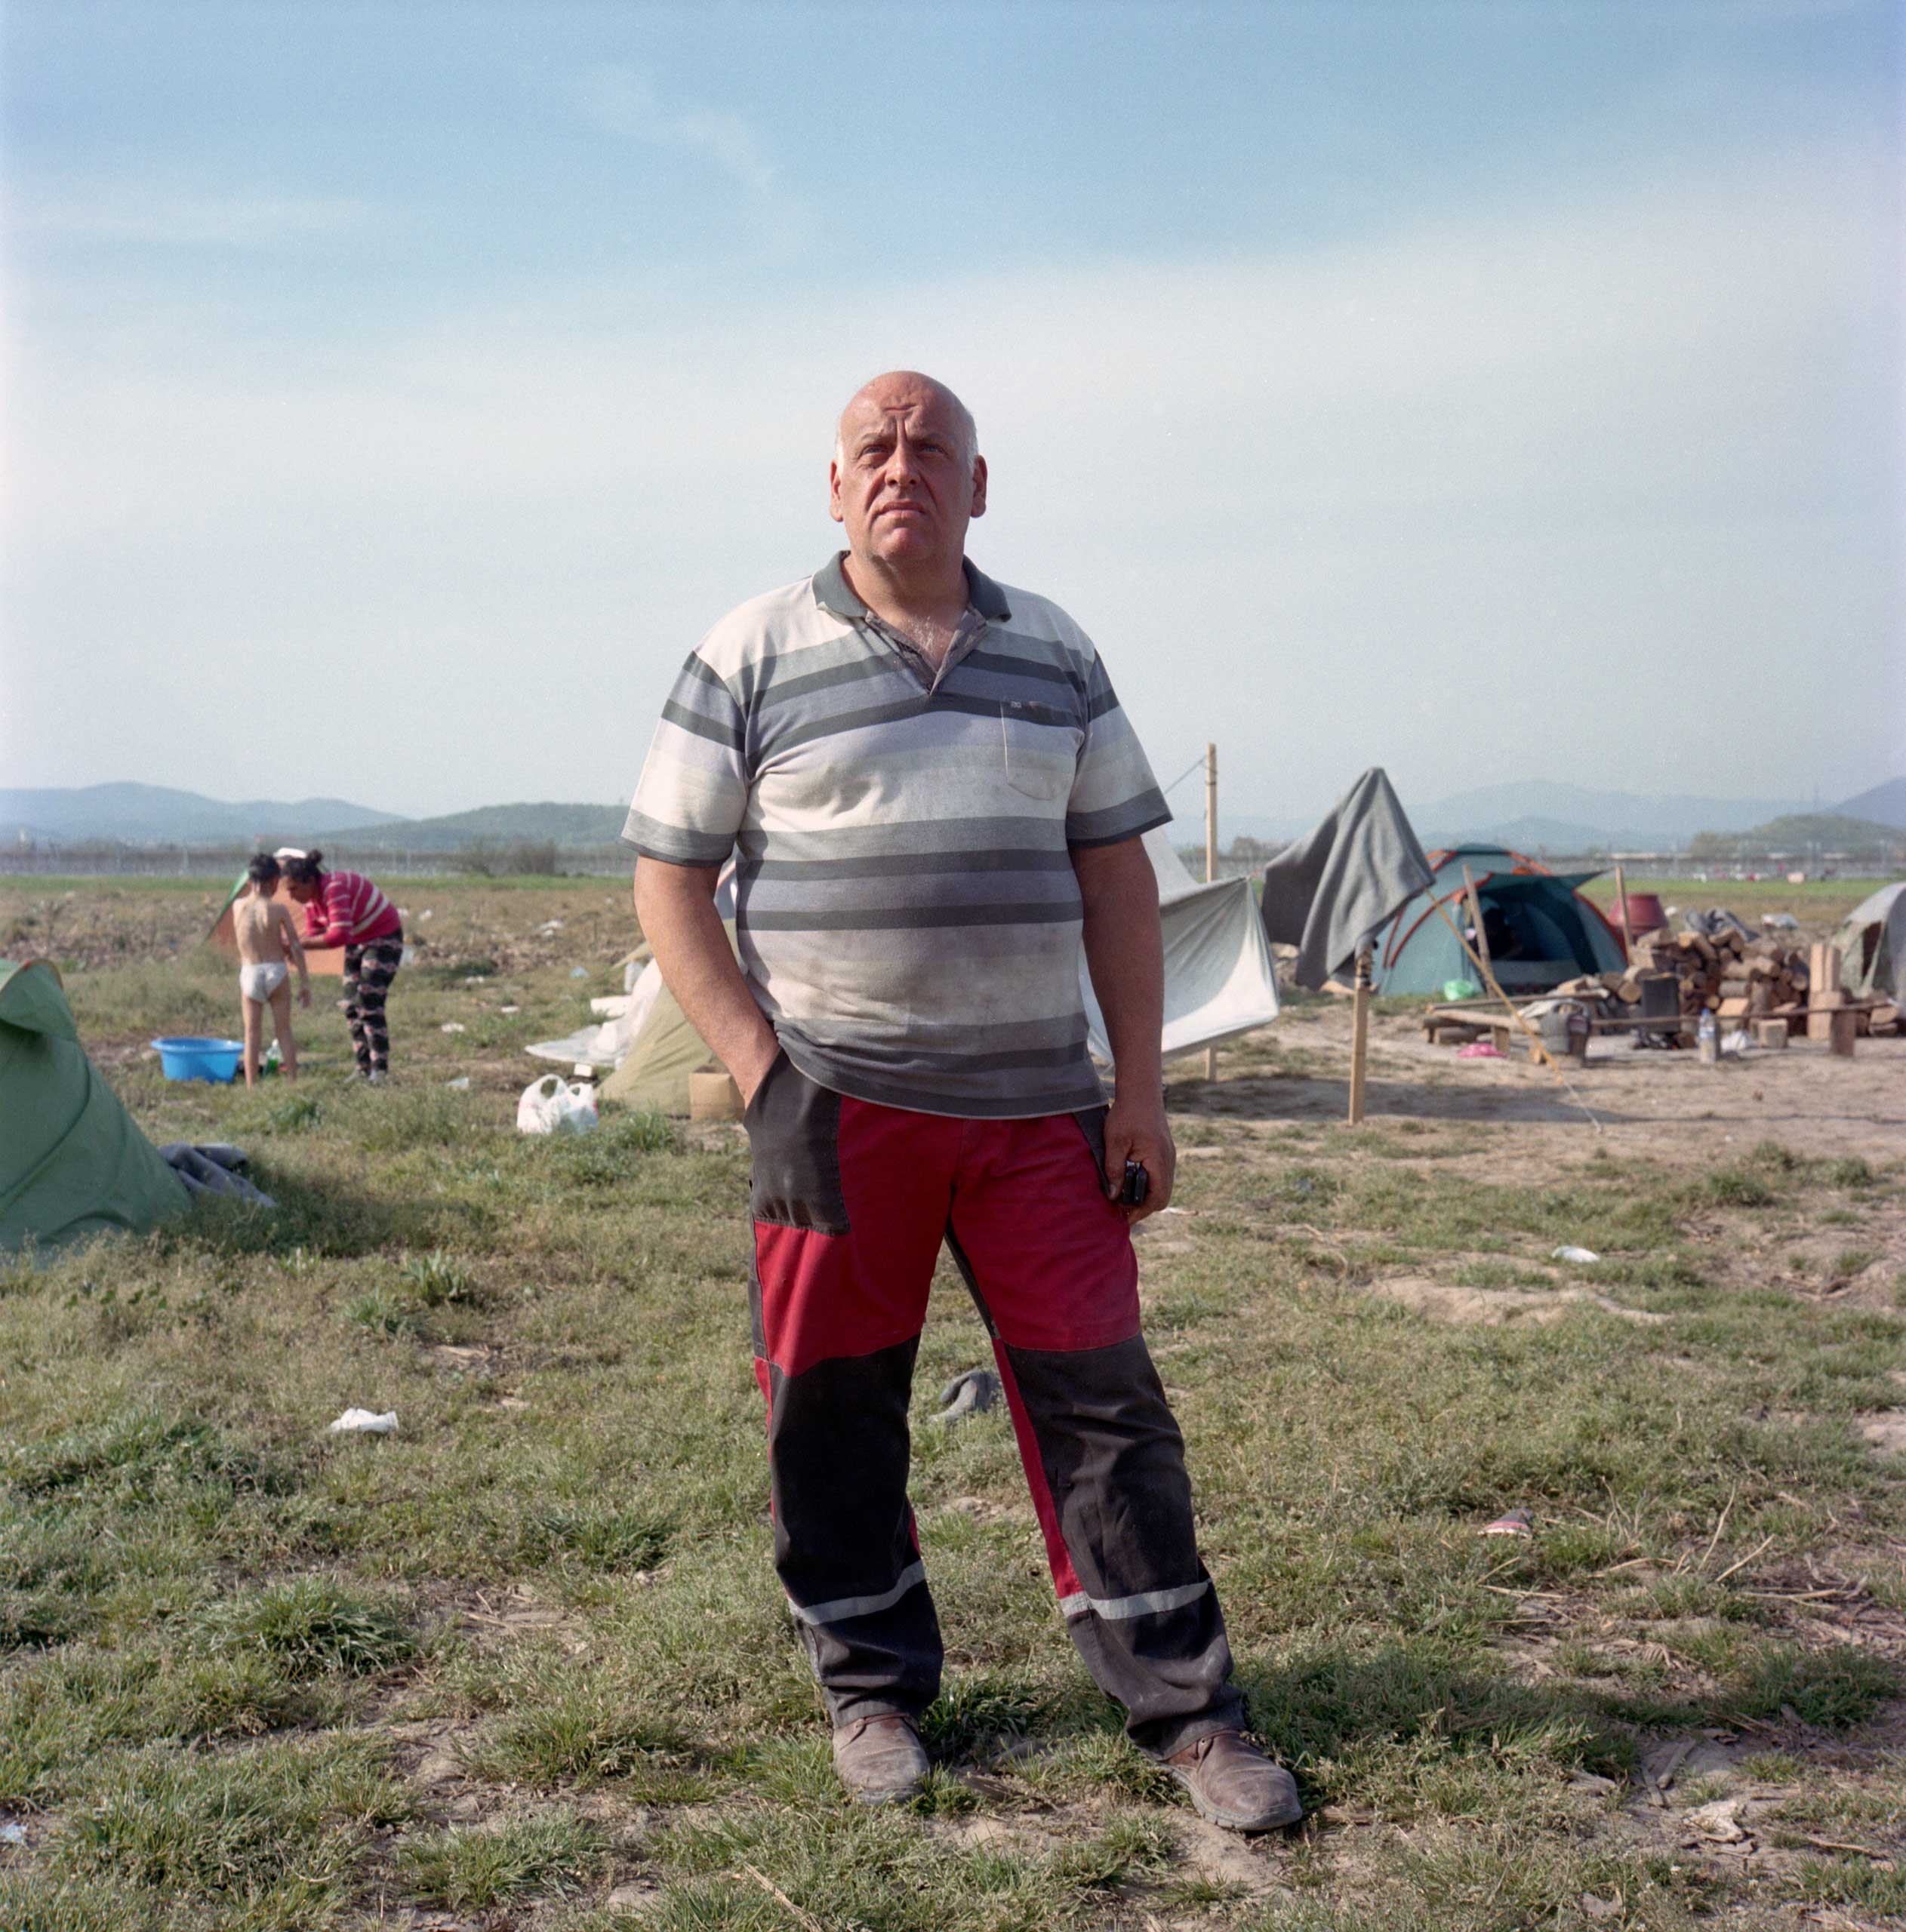 <b>Lazarous Oulis, a livestock farmer</b>                                   Lazaros Oulis stands in a field where he used to plant crops to grow animal feed. Since Sept. 2015, refugee tents have spread on nearly 250 acres of his land, all the way to the border with Macedonia, preventing him from working on his harvest and resulting in losses of 20,000 Euros. Idomeni, Greece. April, 2016